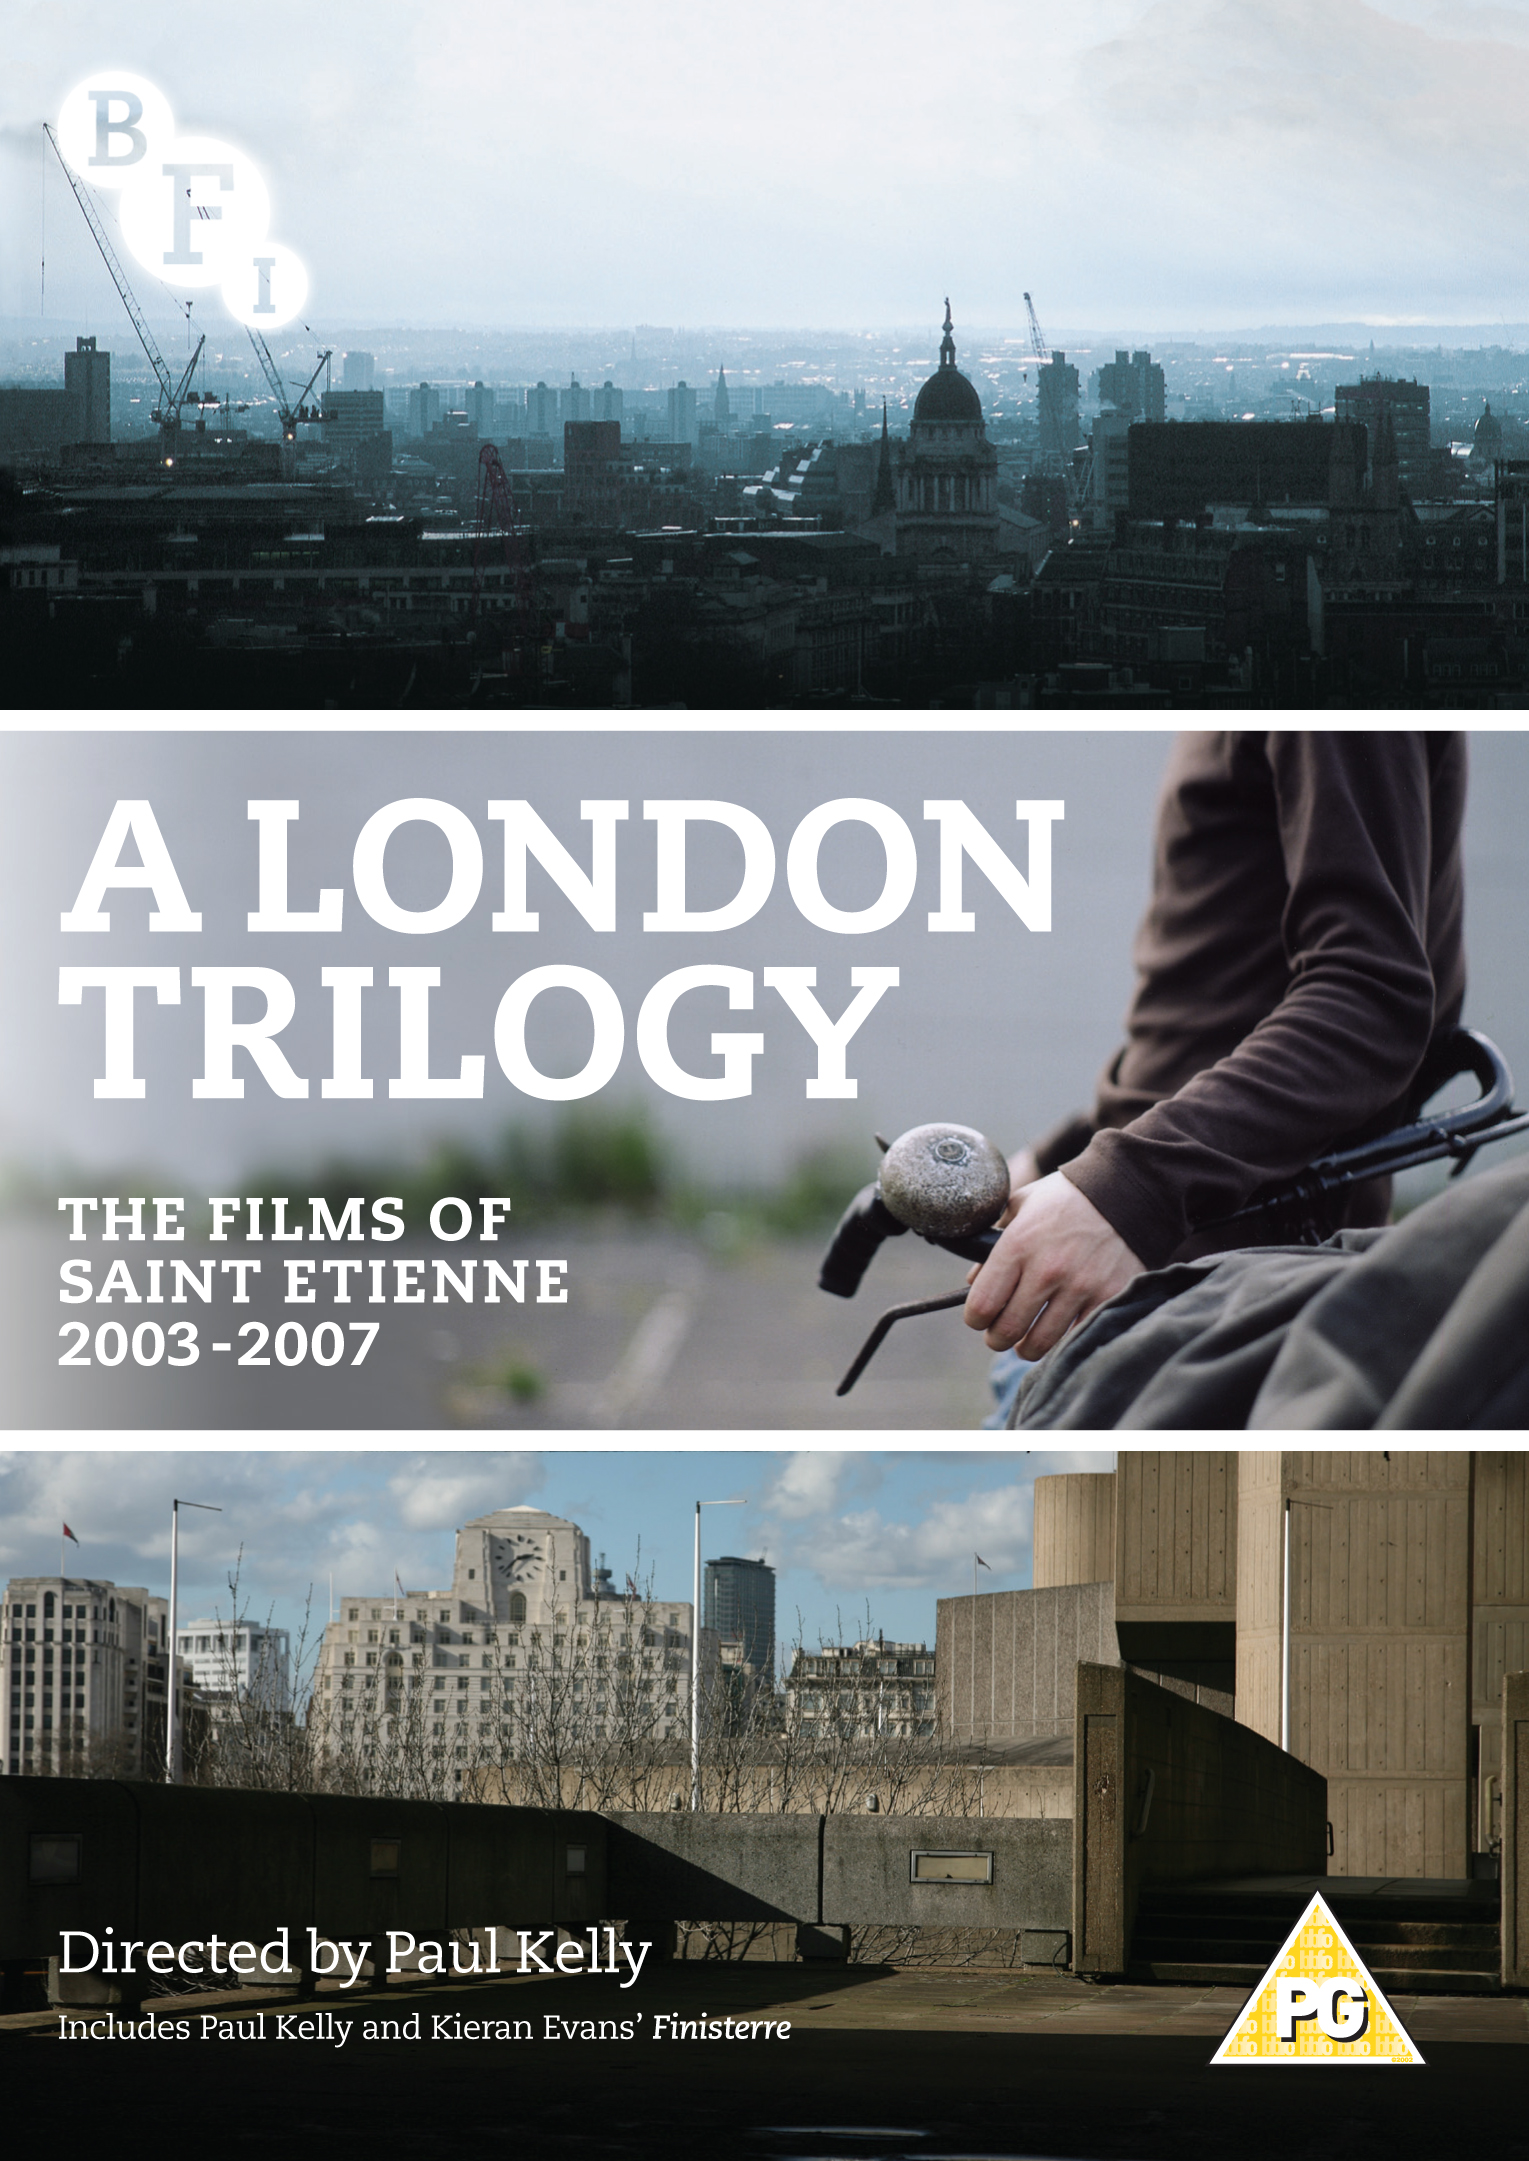 Buy A London Trilogy - The Films of Saint Etienne